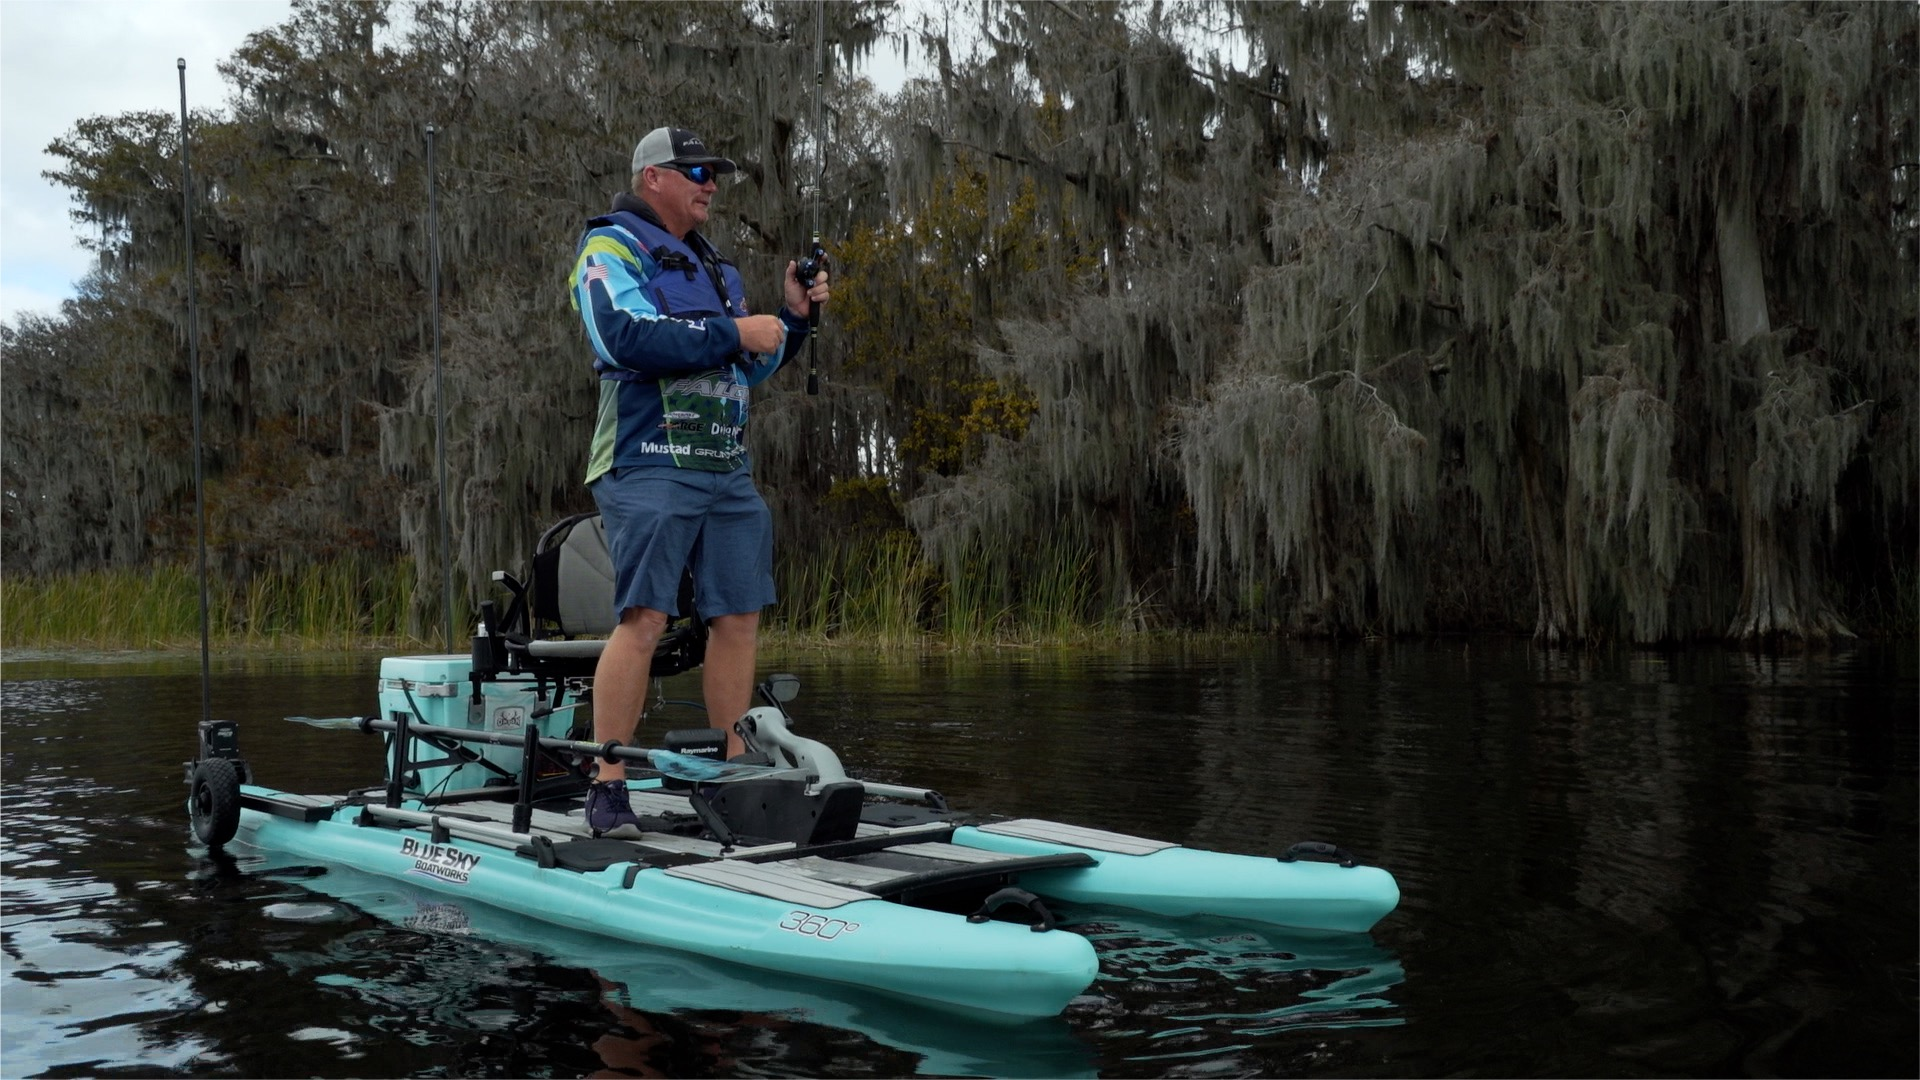 New brand from jackson kayak readies for launch with for Fishing jackson kayak